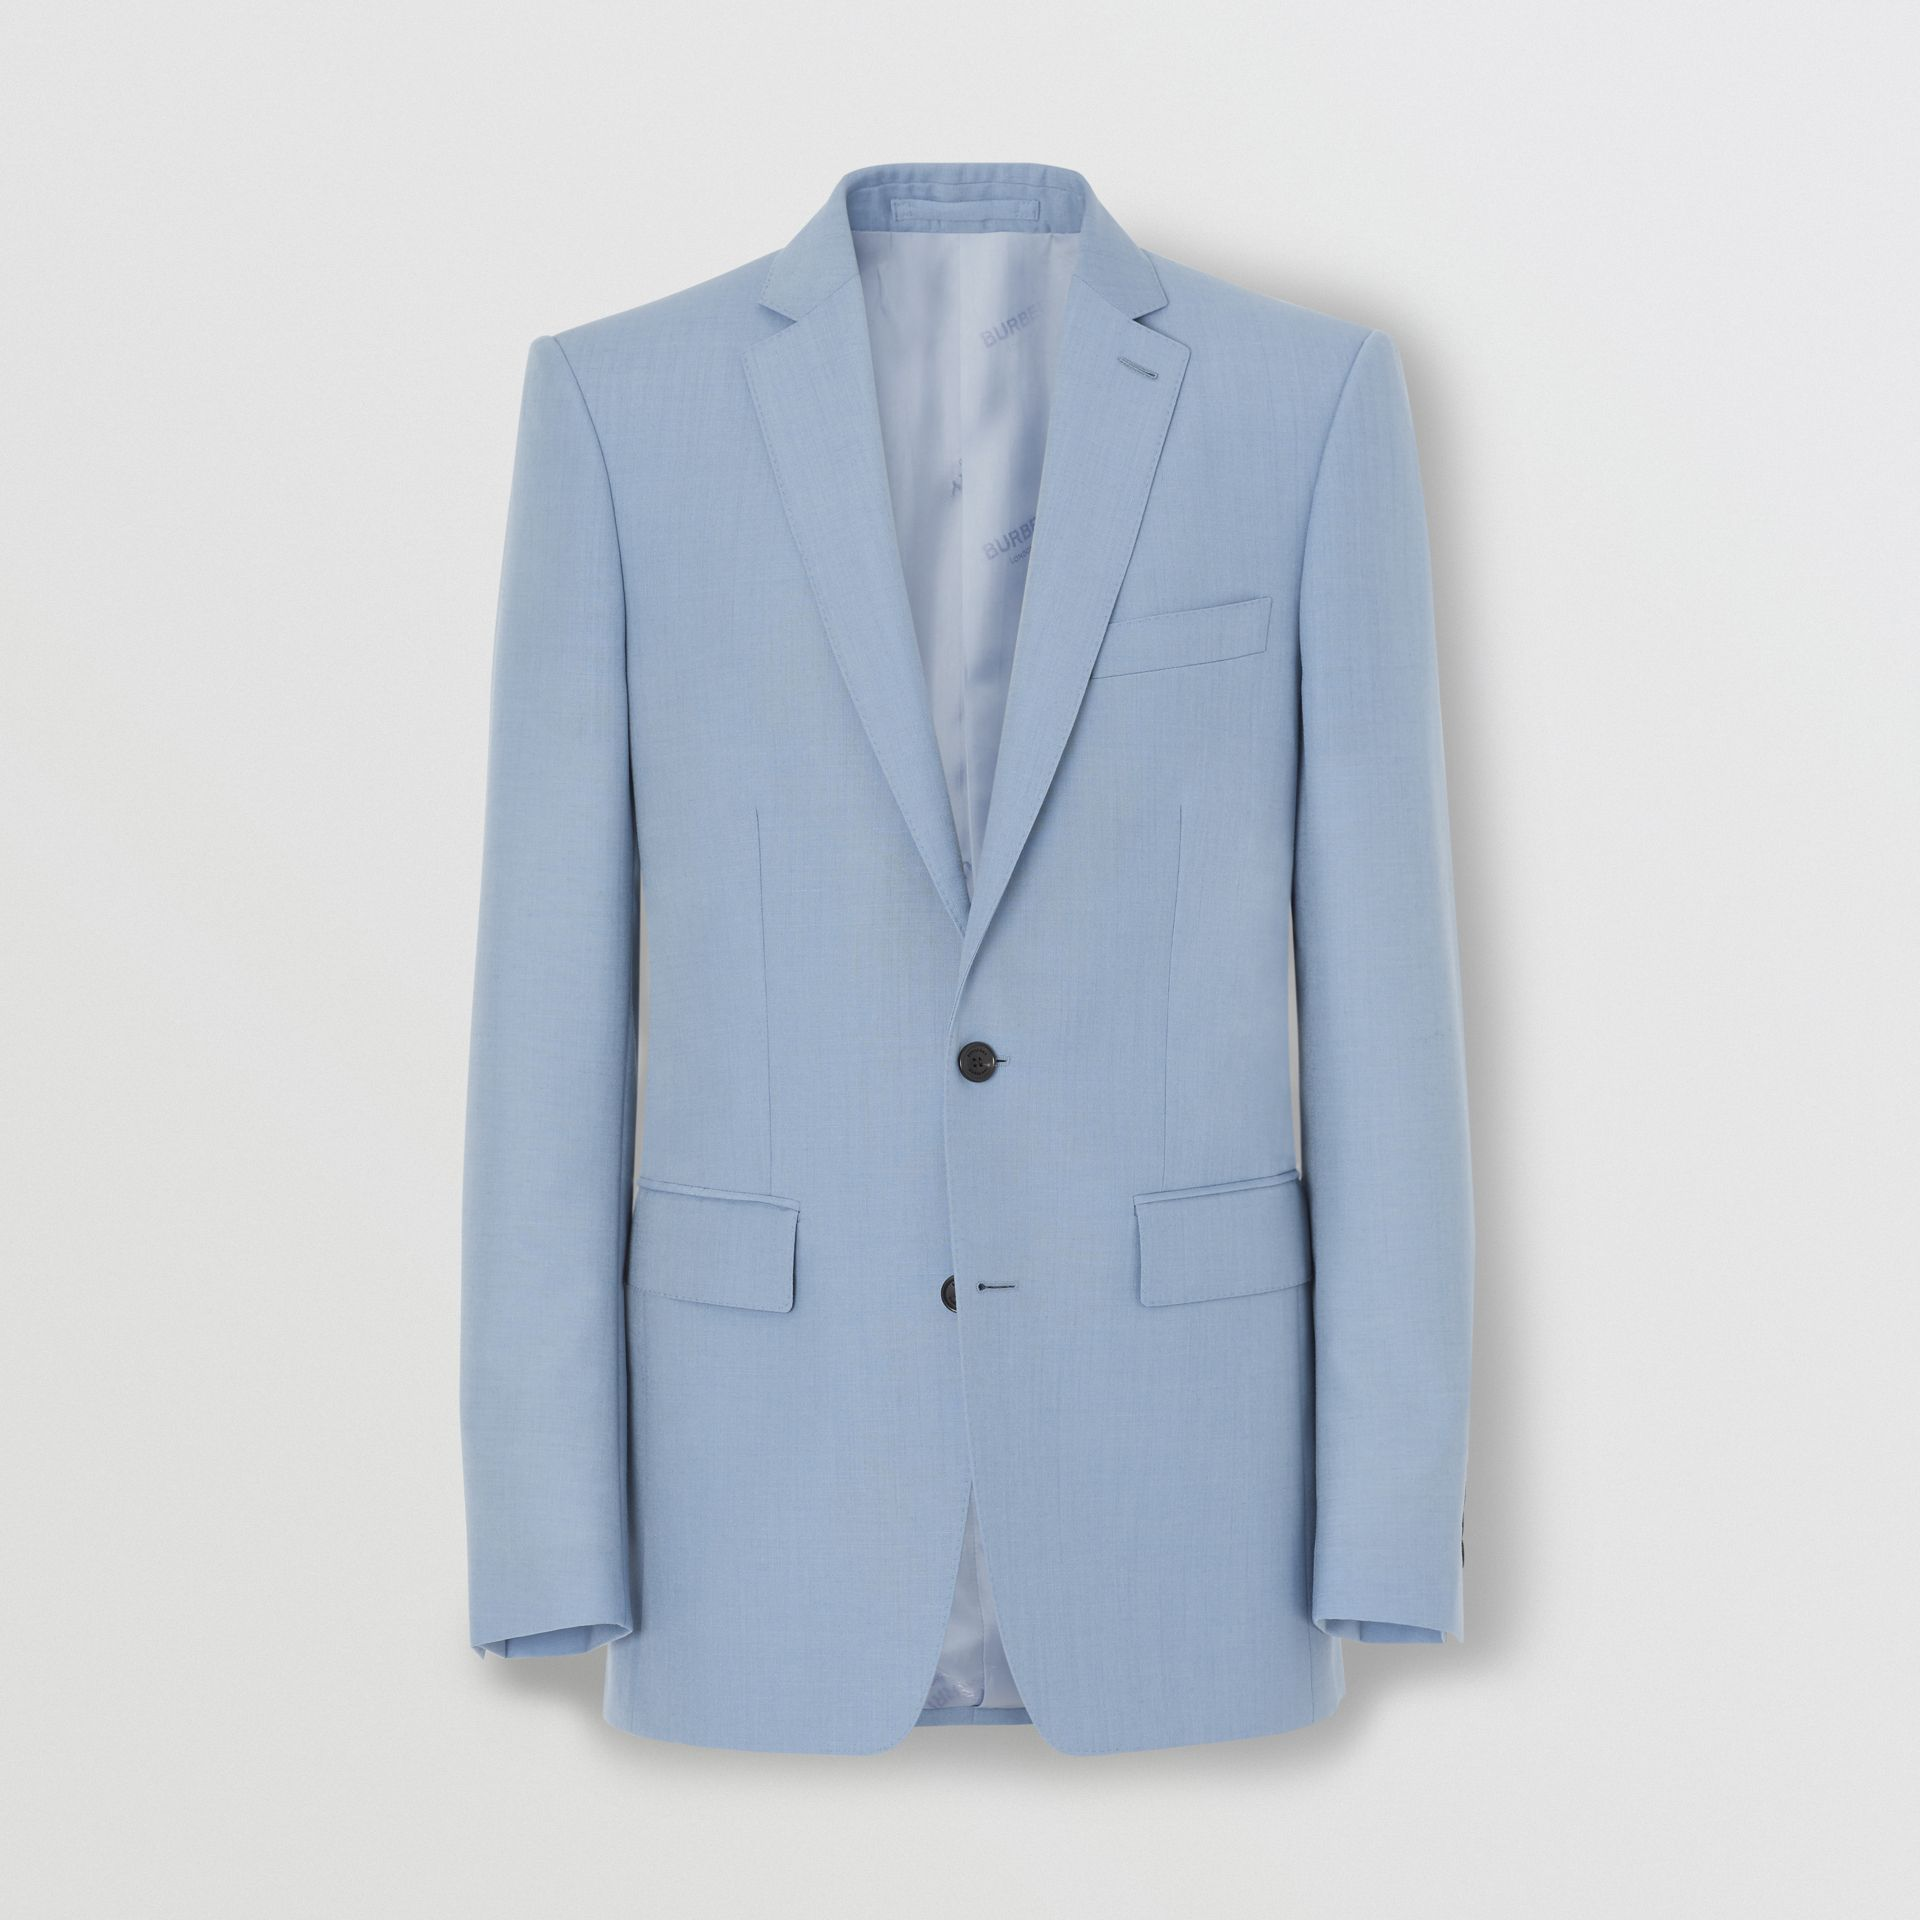 Classic Fit Wool Mohair Tailored Jacket in Pale Blue - Men | Burberry - gallery image 2